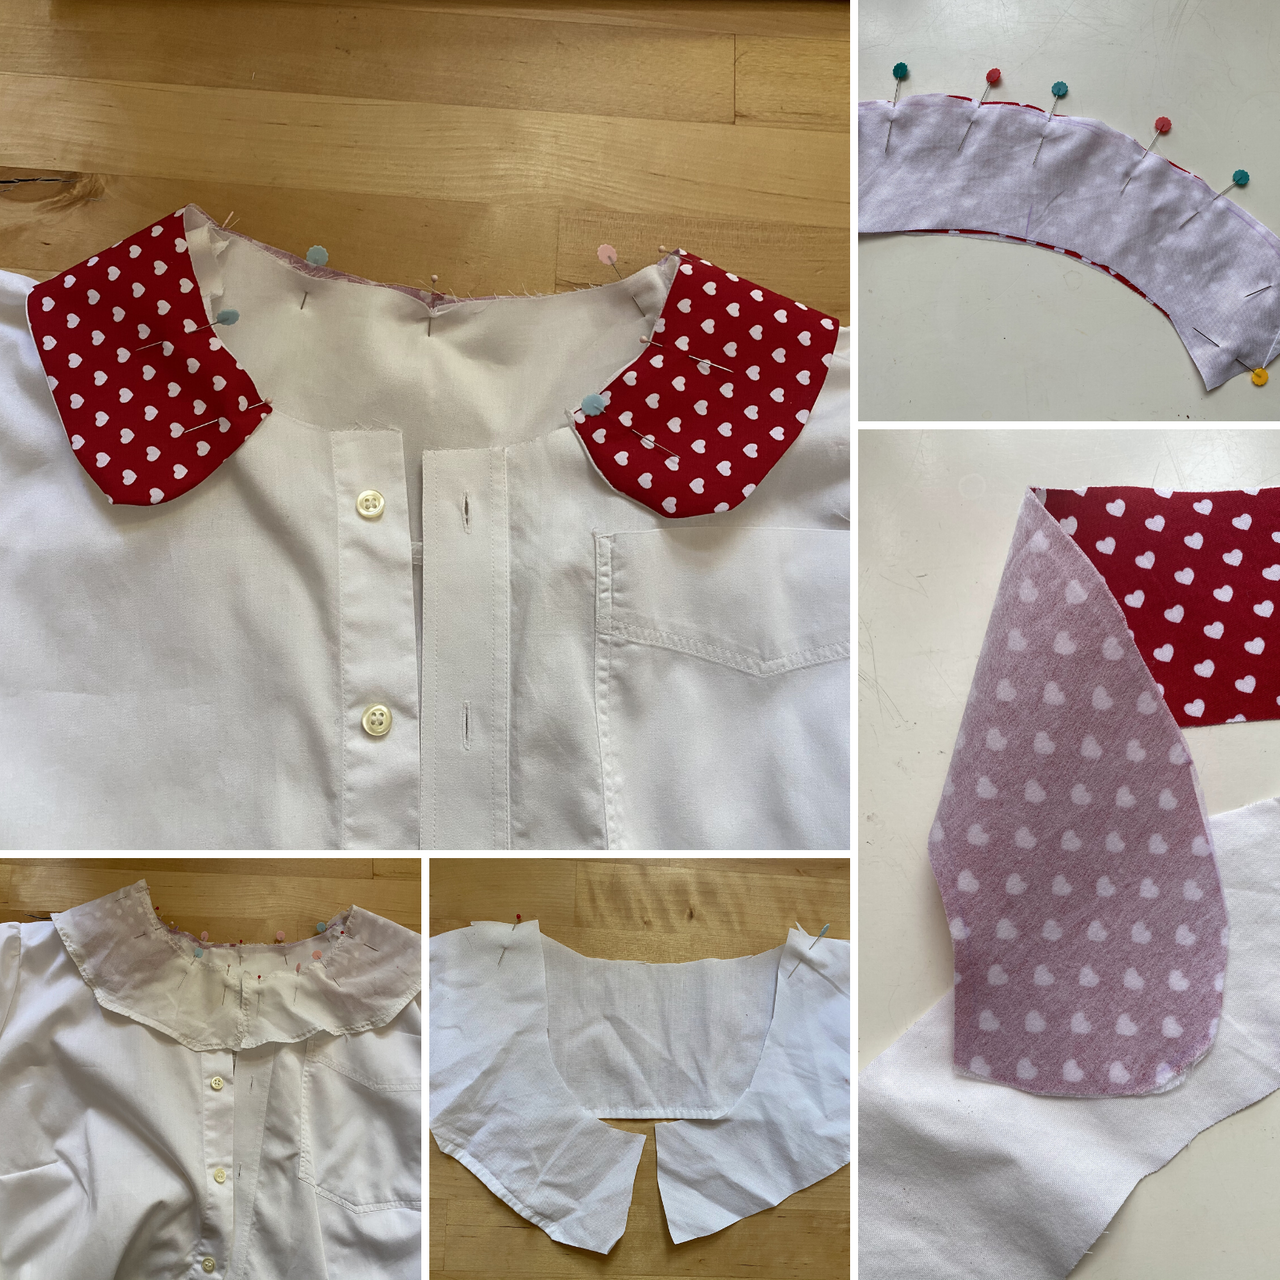 several steps how to attach a Peter pan collar and interfacing on a handmade blouse